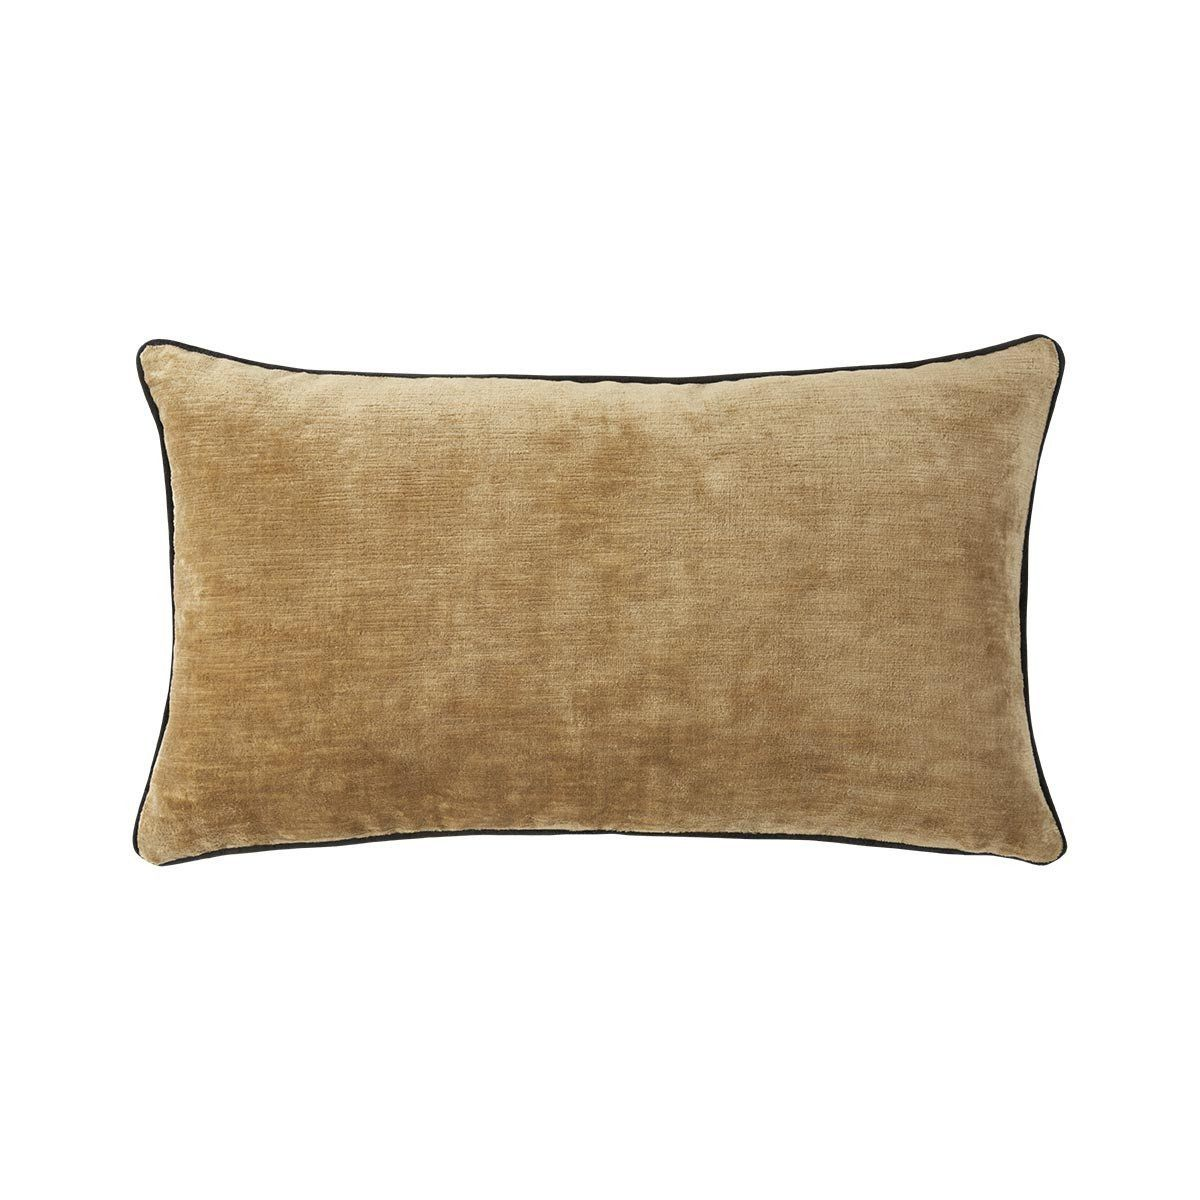 Boromee Daim Lumbar Pillow by Iosis | Fig Linens and Home